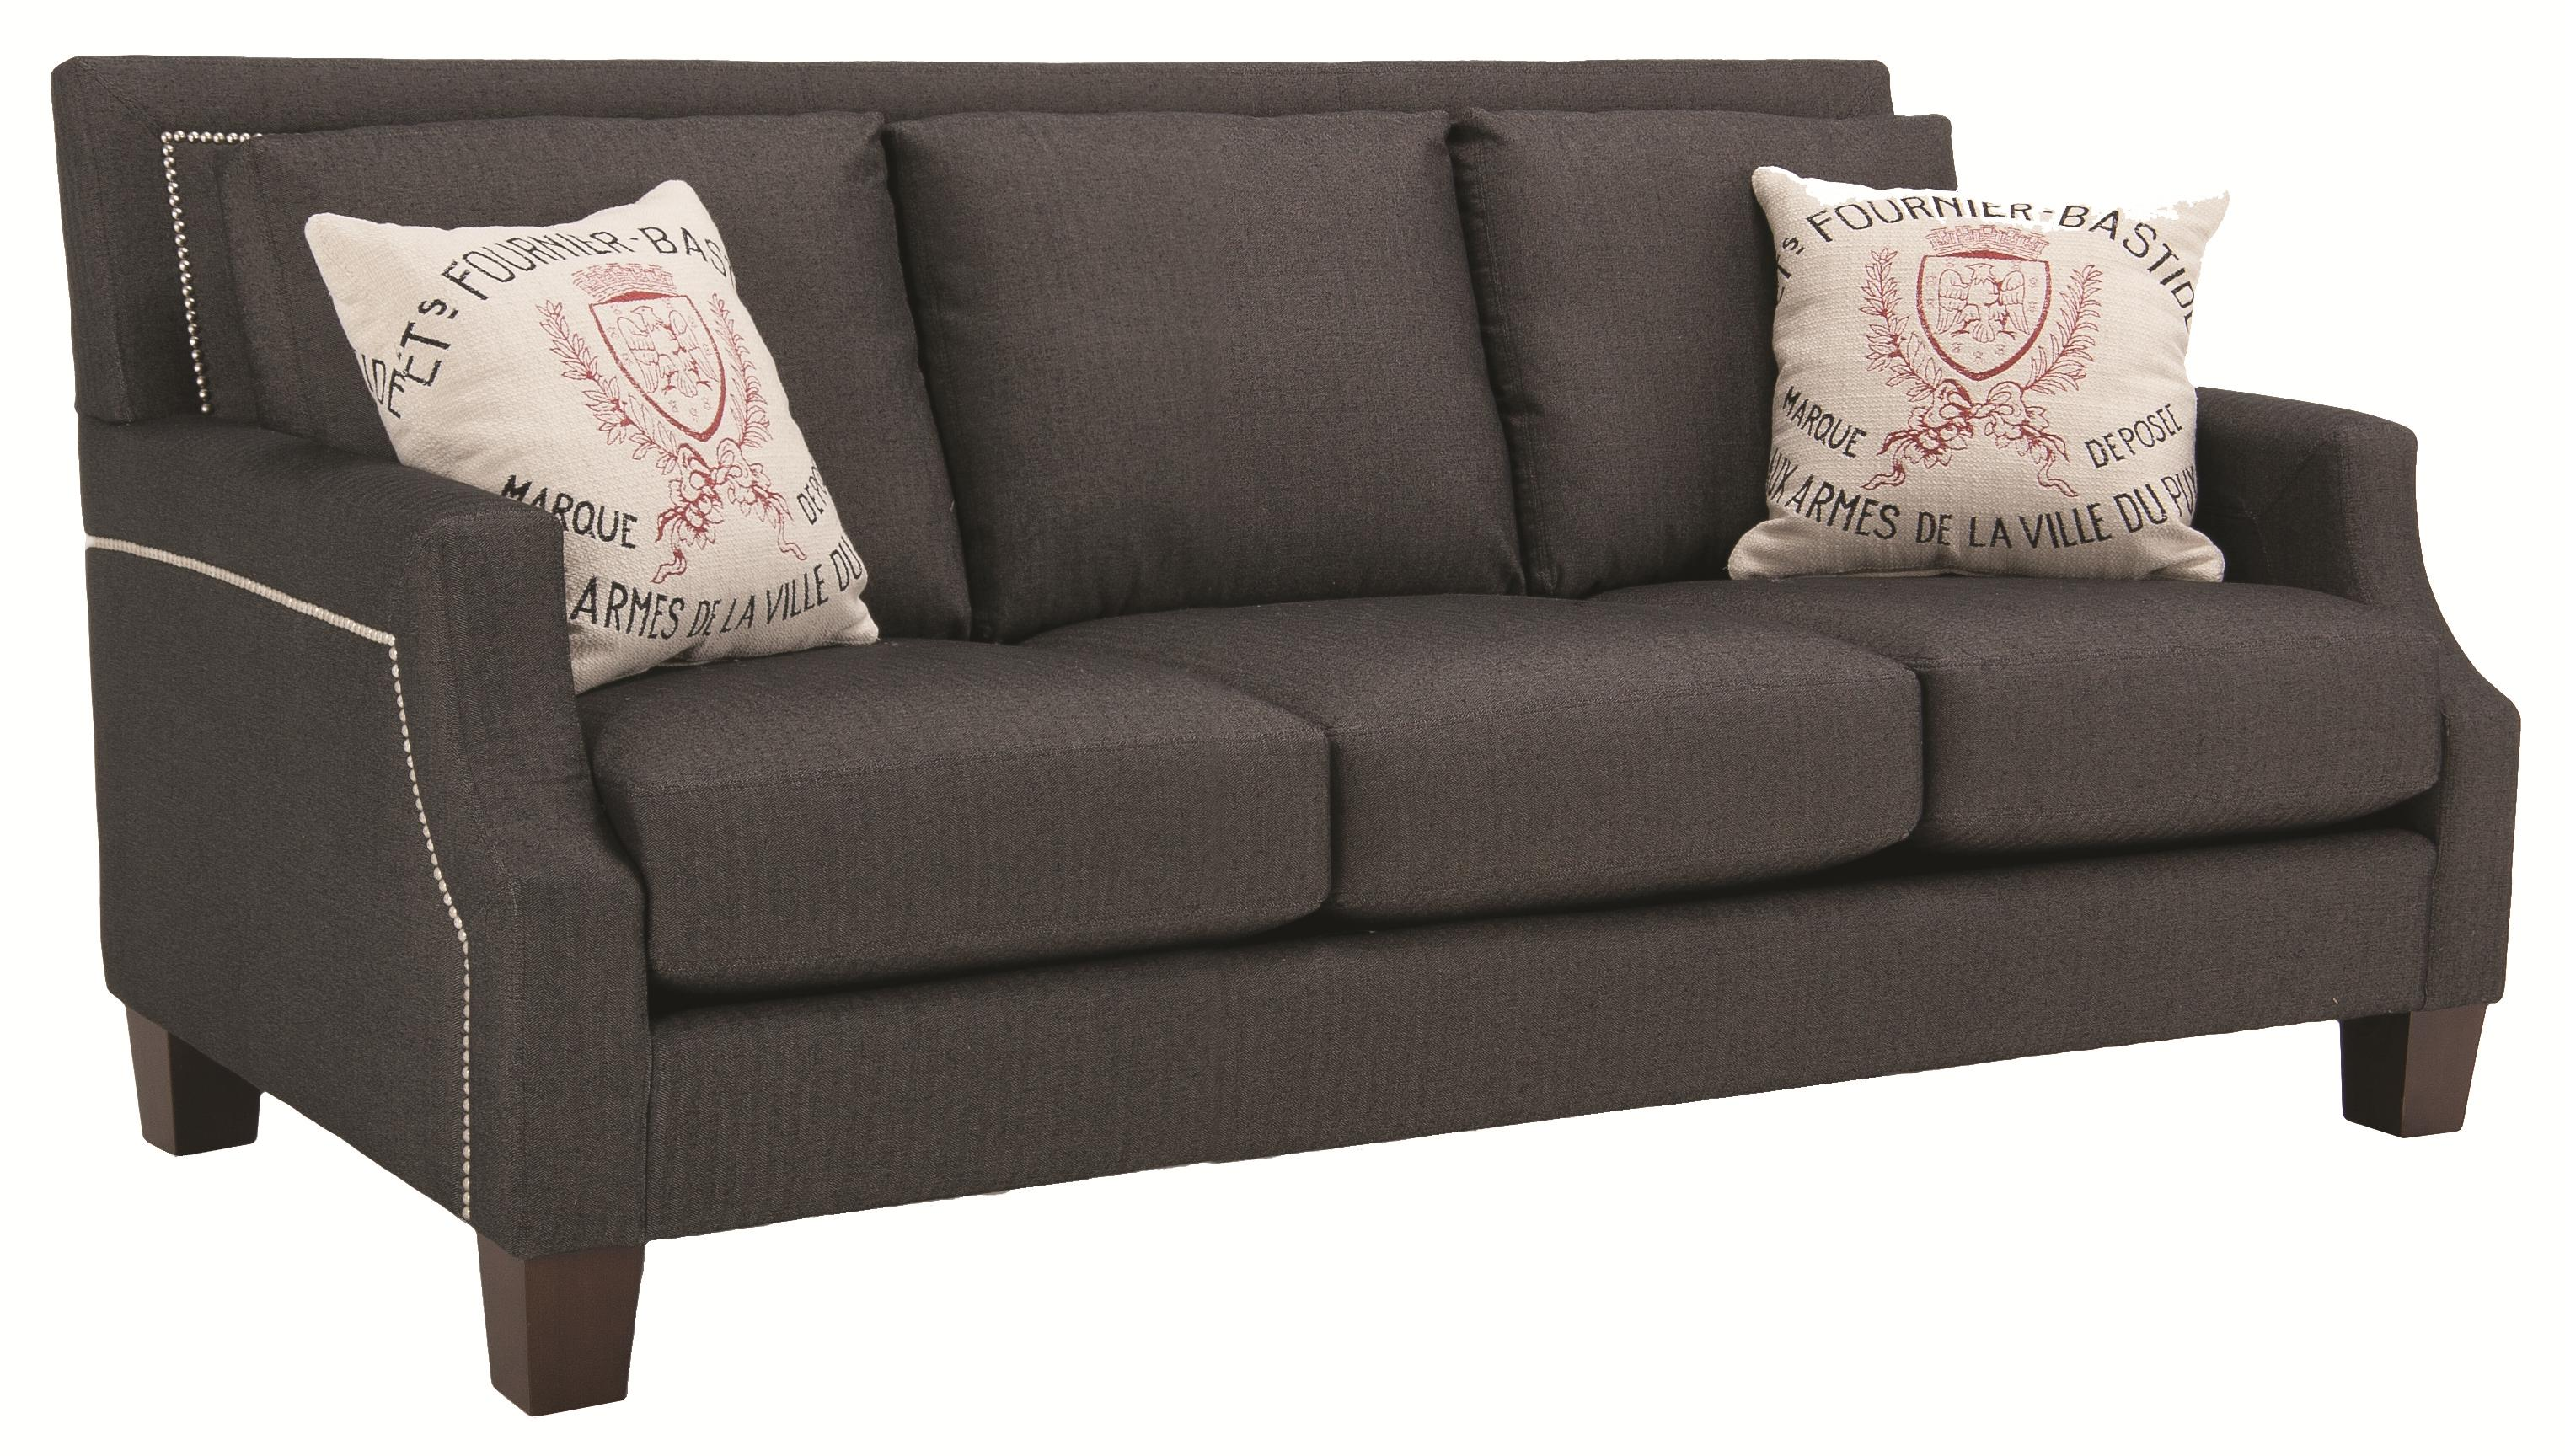 2135  Sofa by Decor-Rest at Rooms for Less